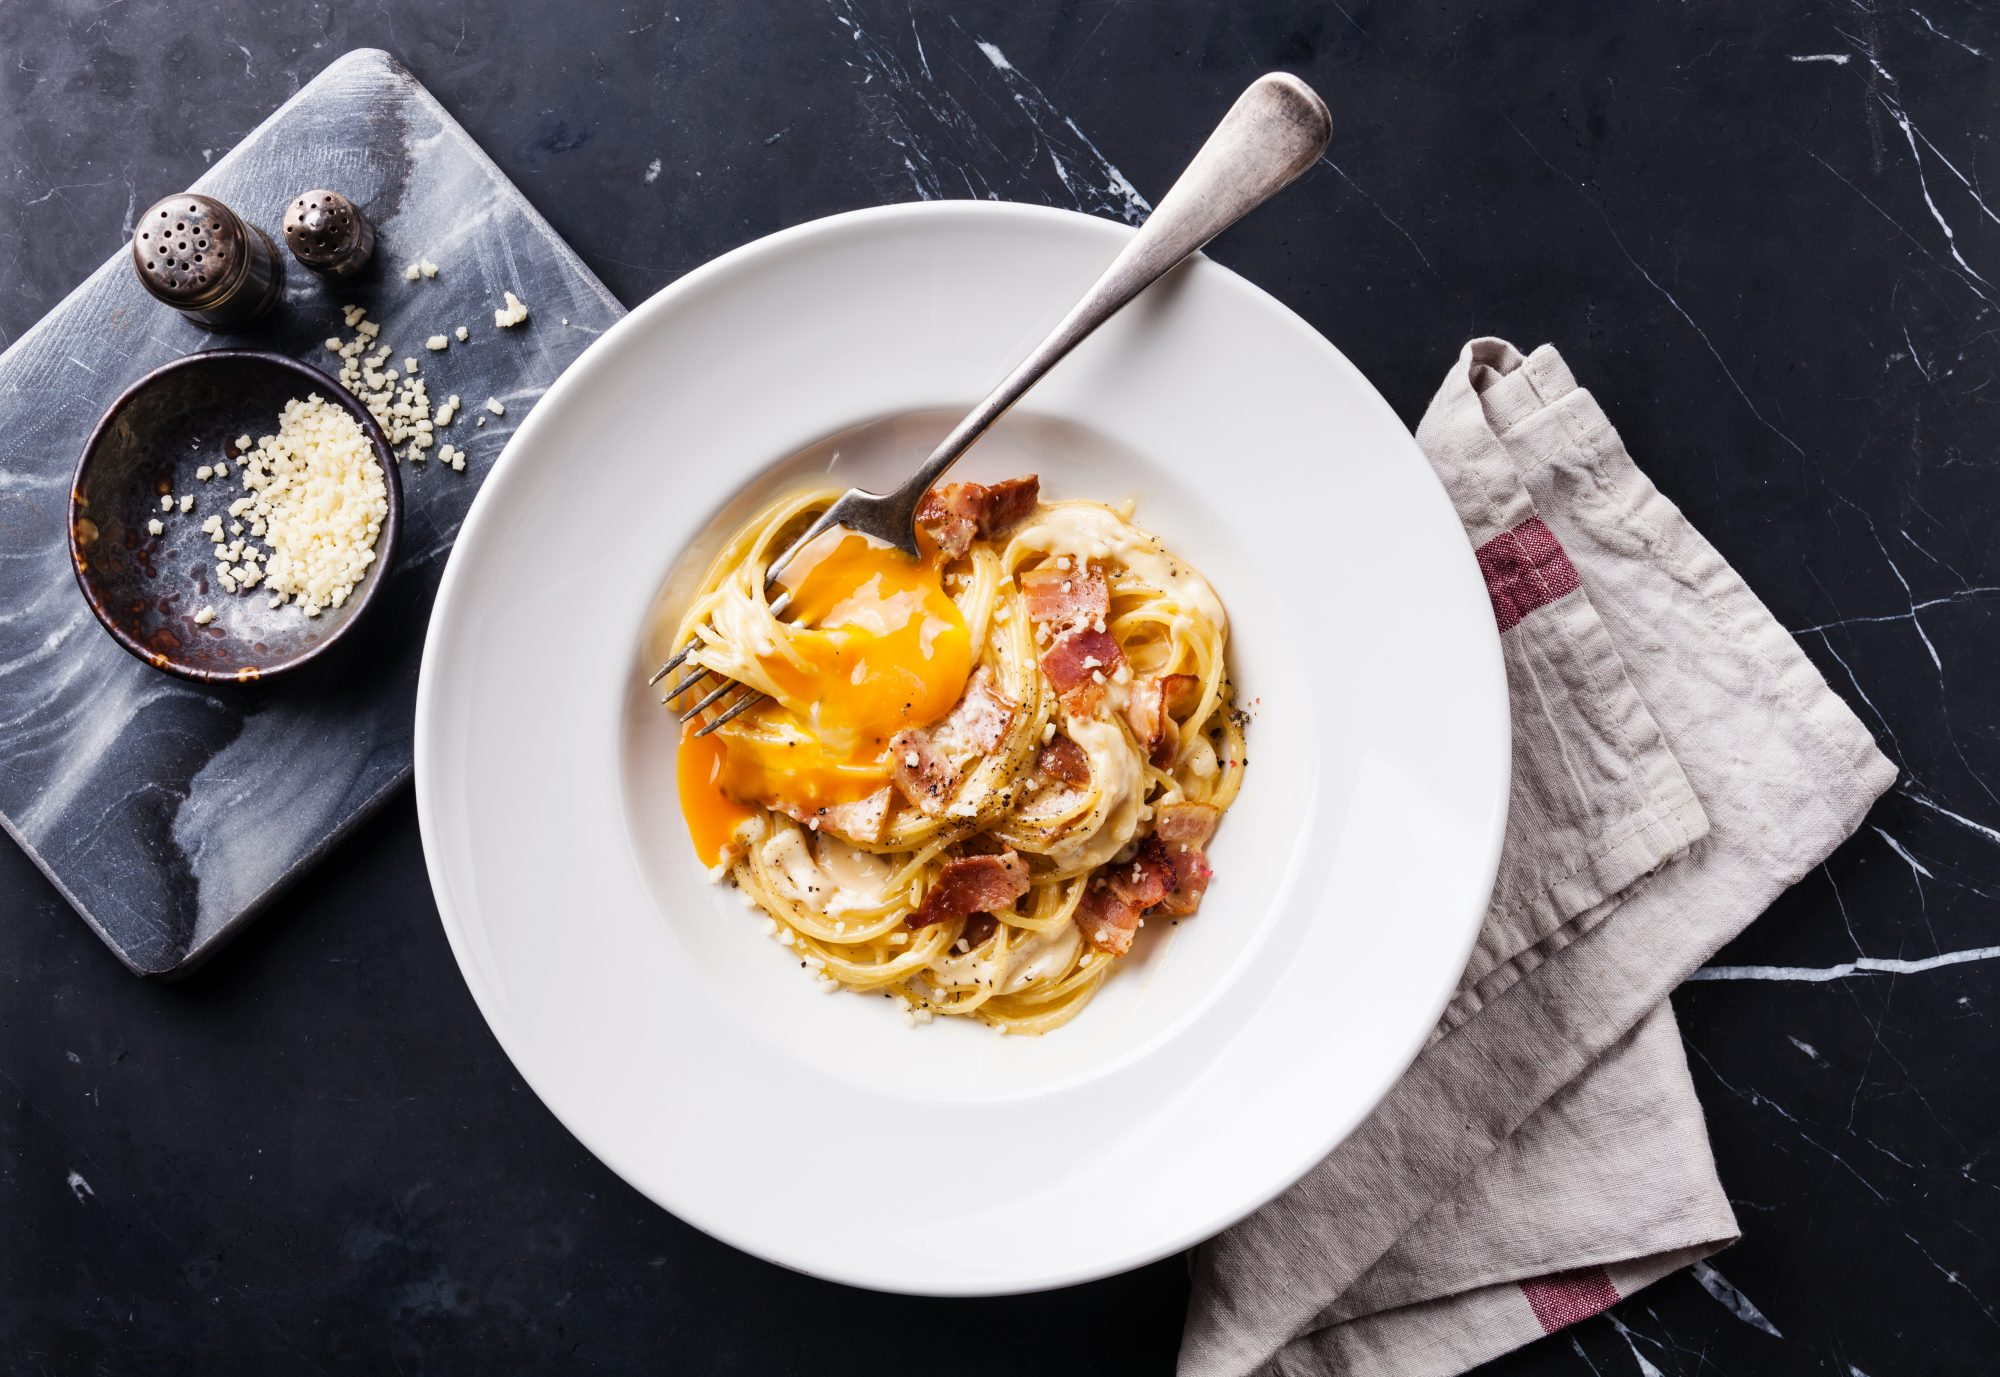 getty-carbonara-image